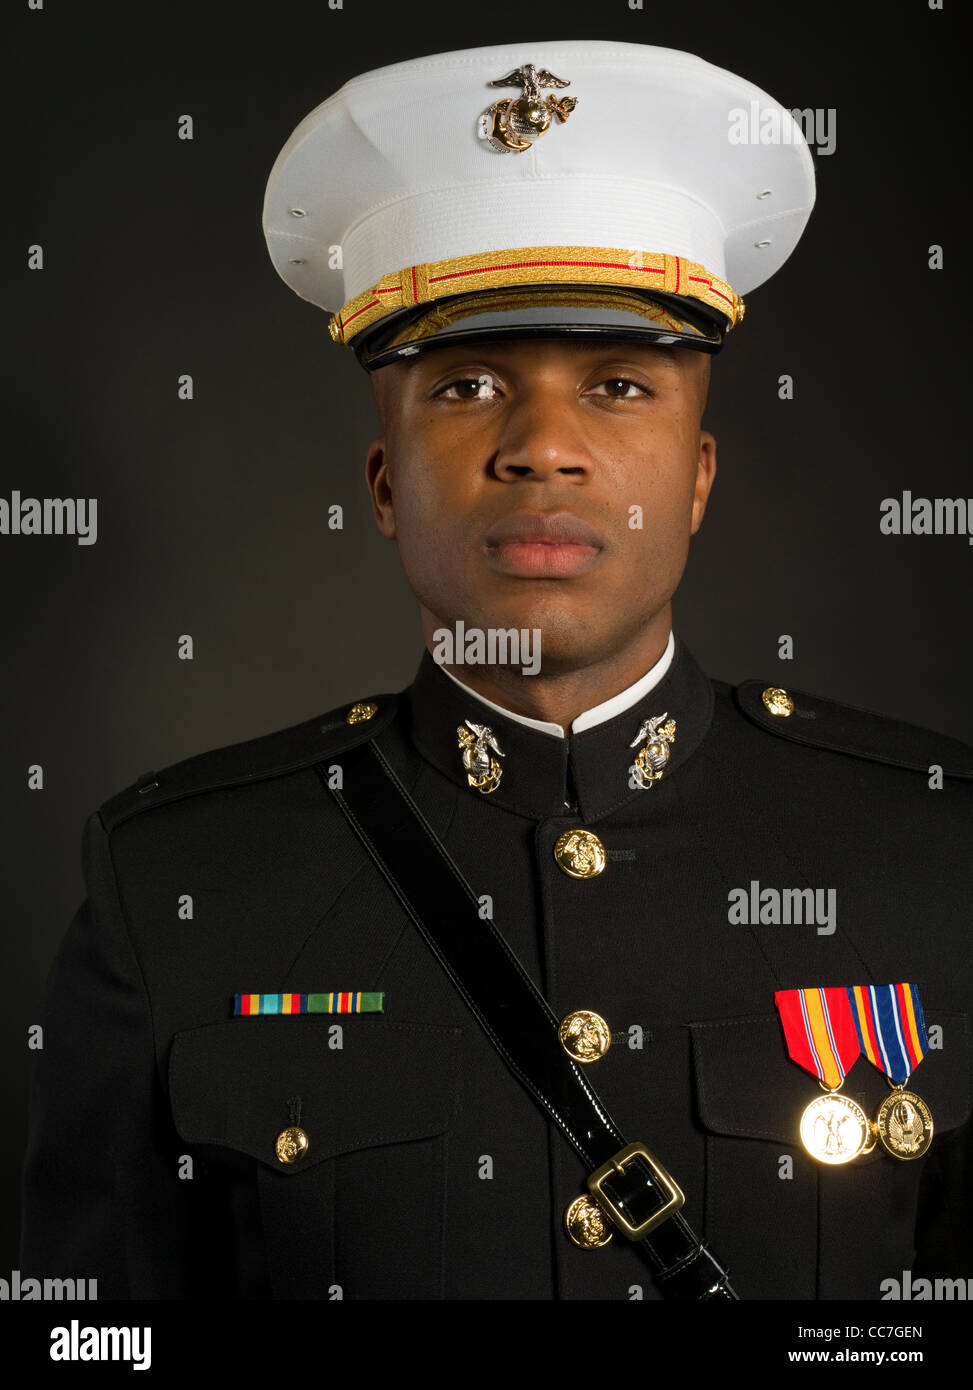 United States Marine Corps Officer In Blue Dress A Uniform Stock